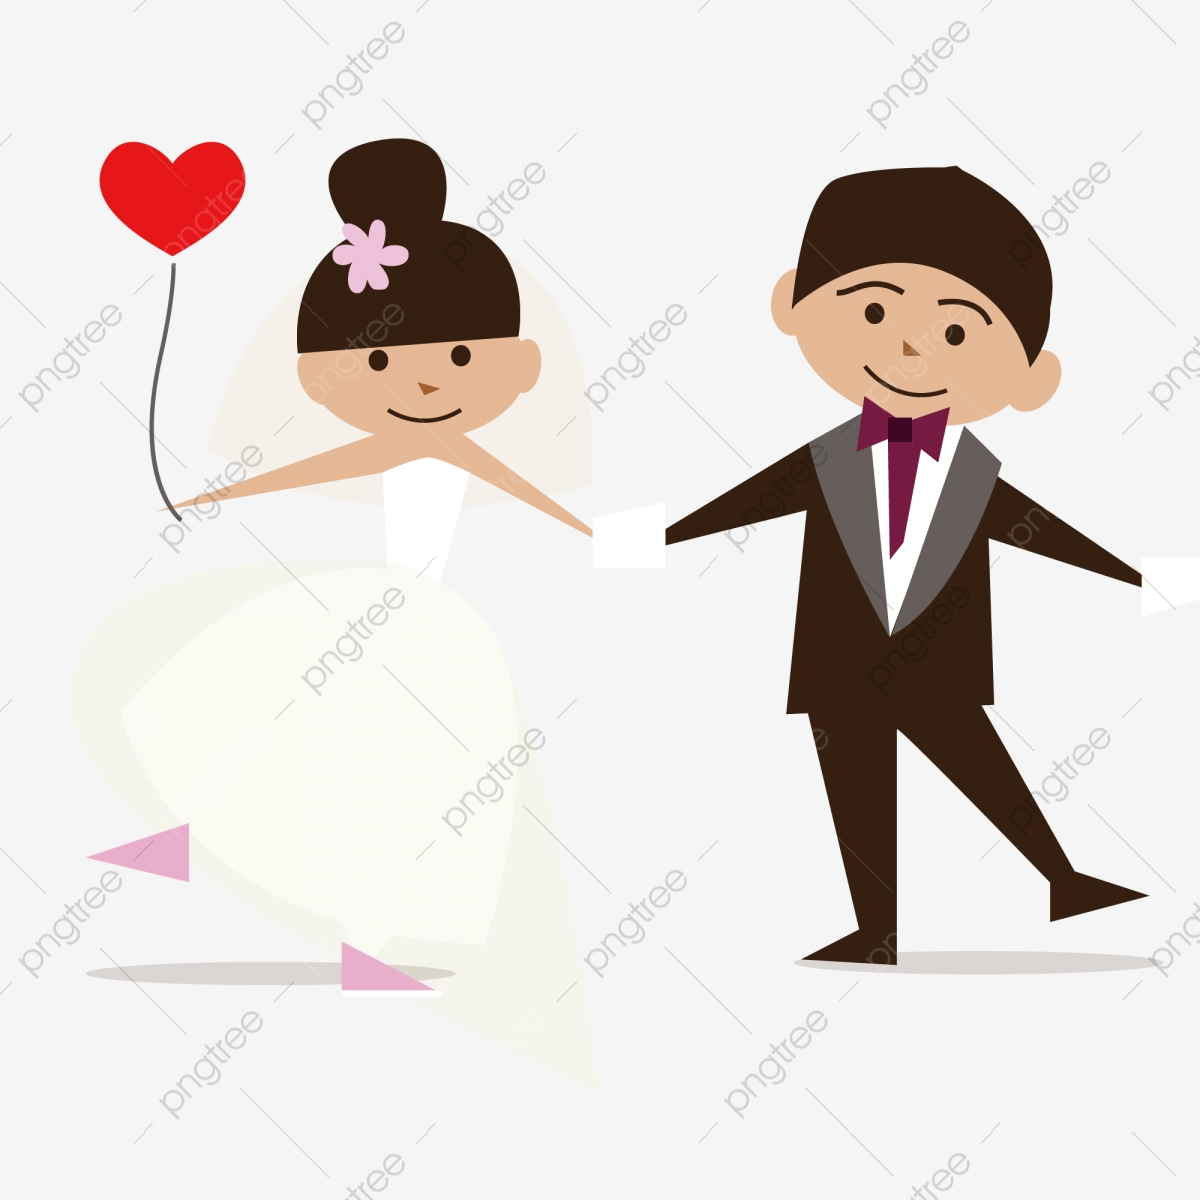 hight resolution of commercial use resource upgrade to premium plan and get license authorization upgradenow bride and groom